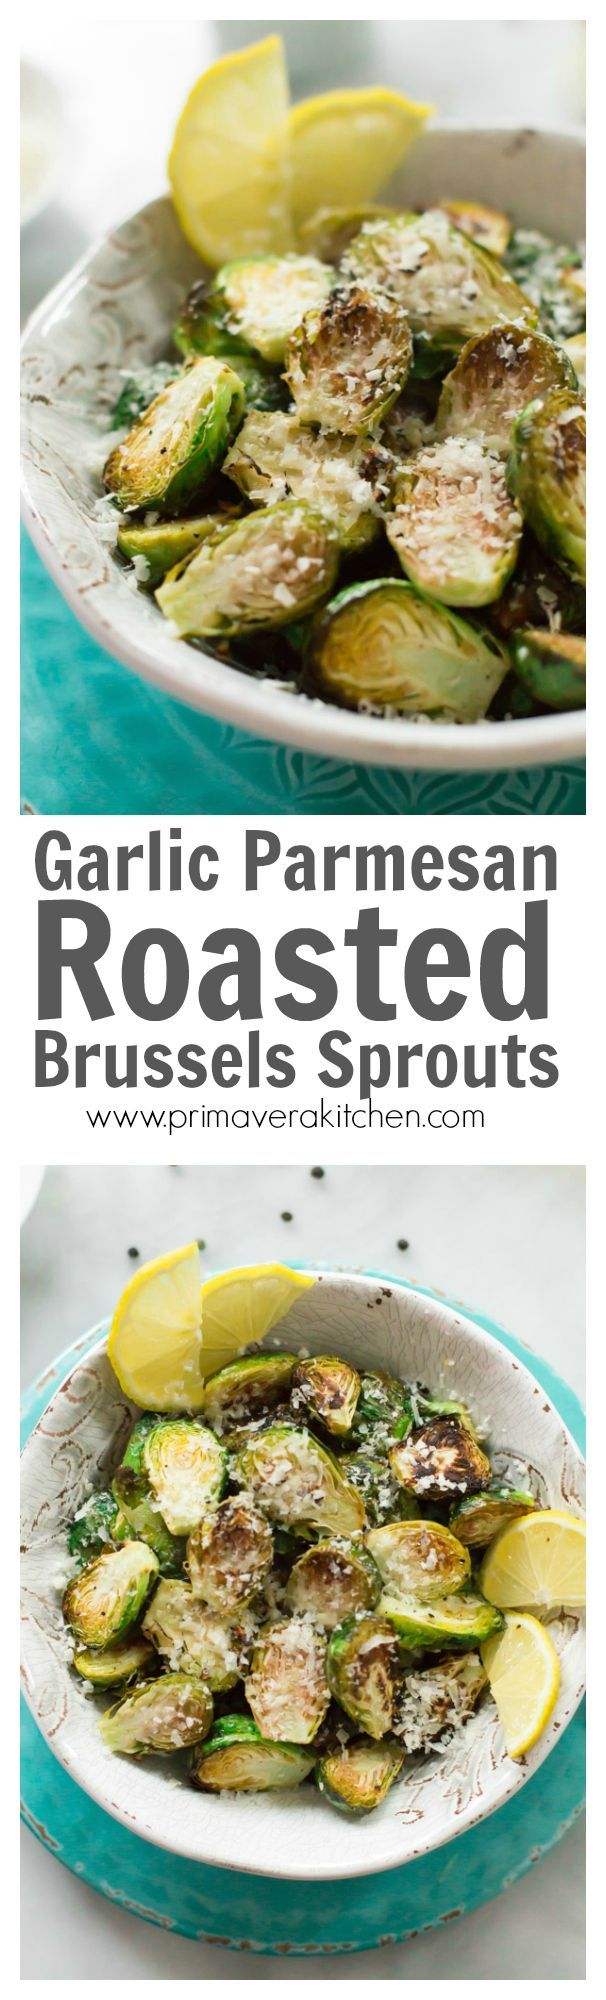 Garlic Parmesan Roasted Brussels Sprouts -This easy to make Garlic Parmesan Roasted Brussels Sprouts is a delicious side dish made with lemon, parmesan, olive oil and lots of garlic.